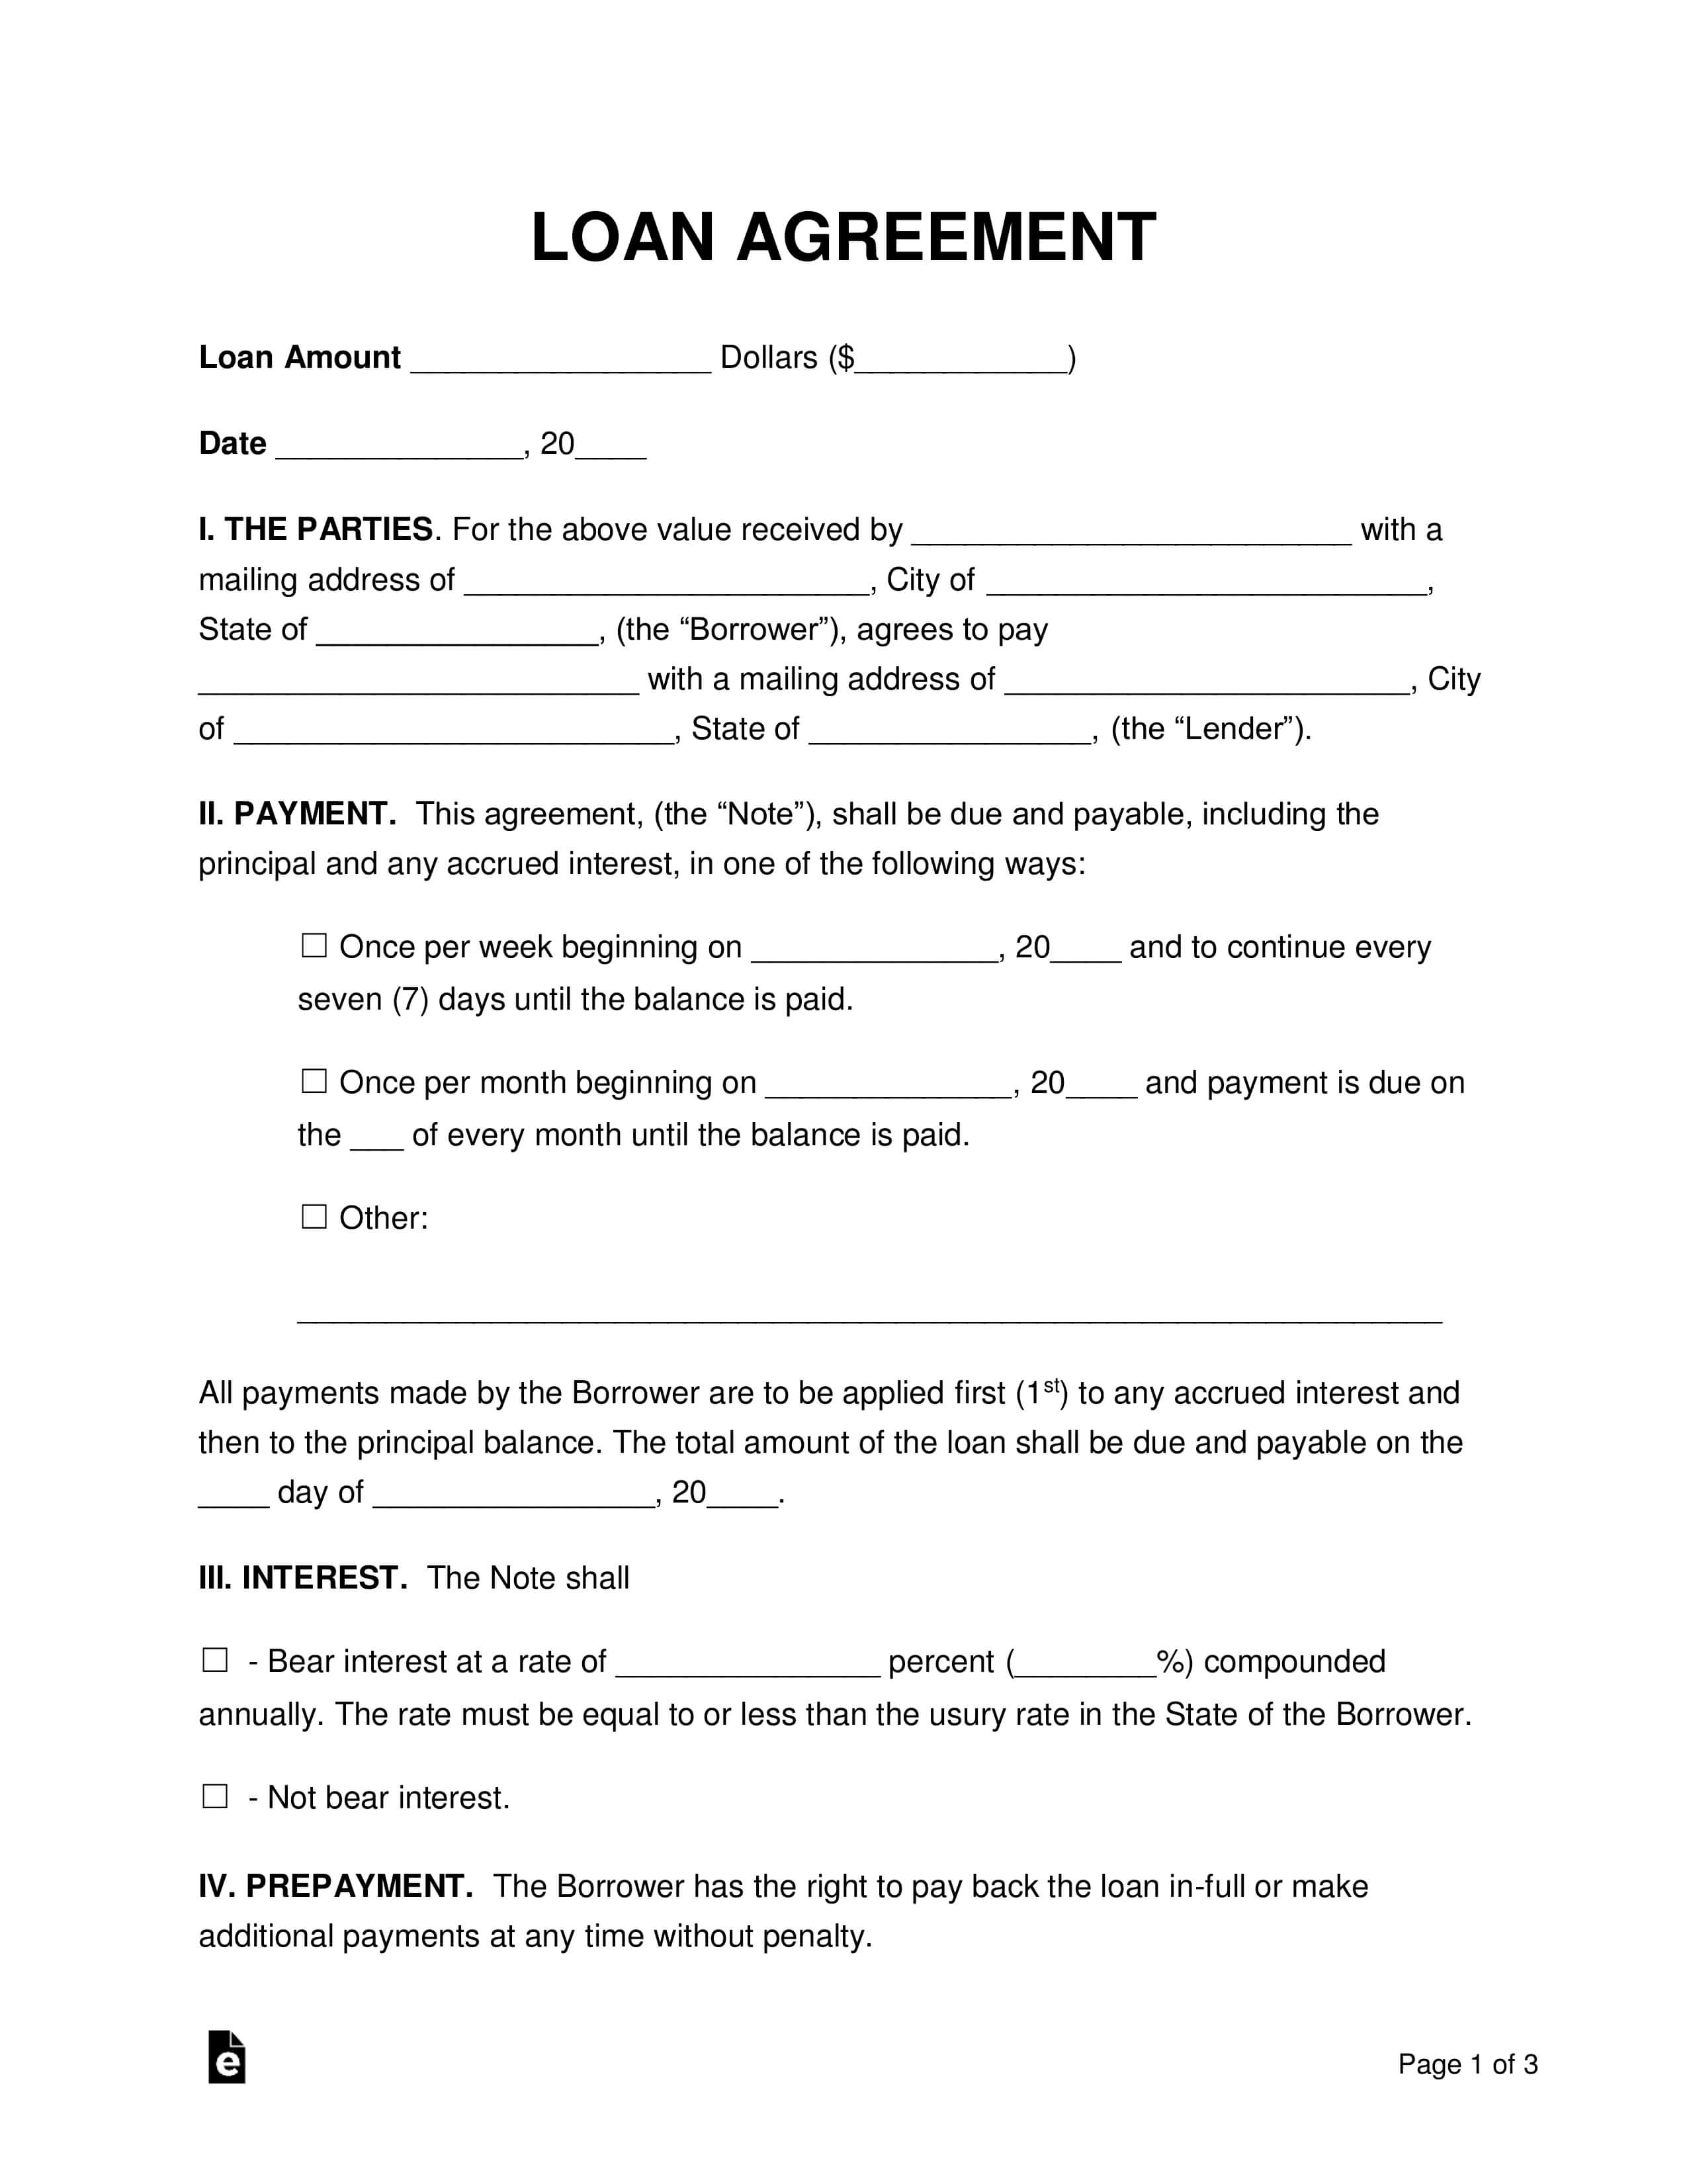 Free Loan Agreement Templates - Pdf | Word | Eforms – Free In Blank Loan Agreement Template